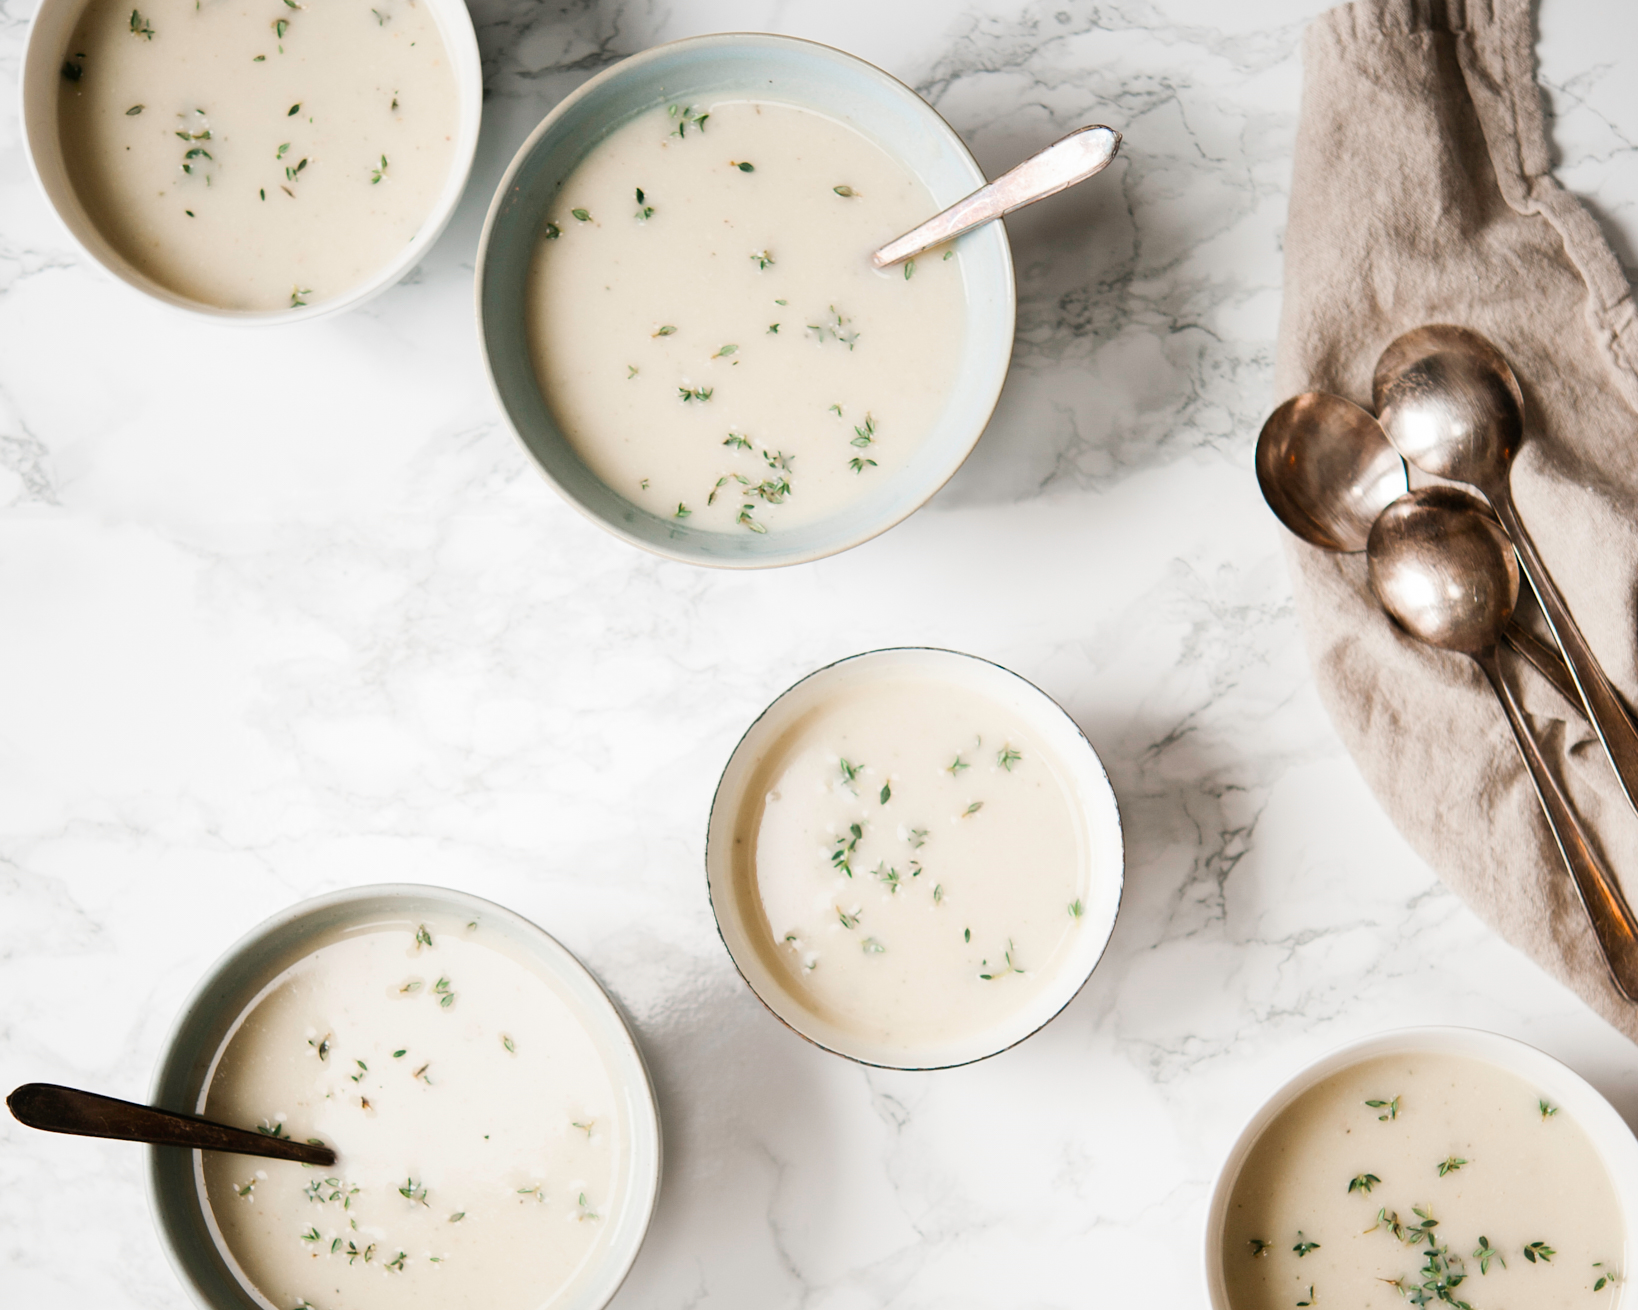 This cauliflower soup is made with cauliflower and celeriac and is dairy free.